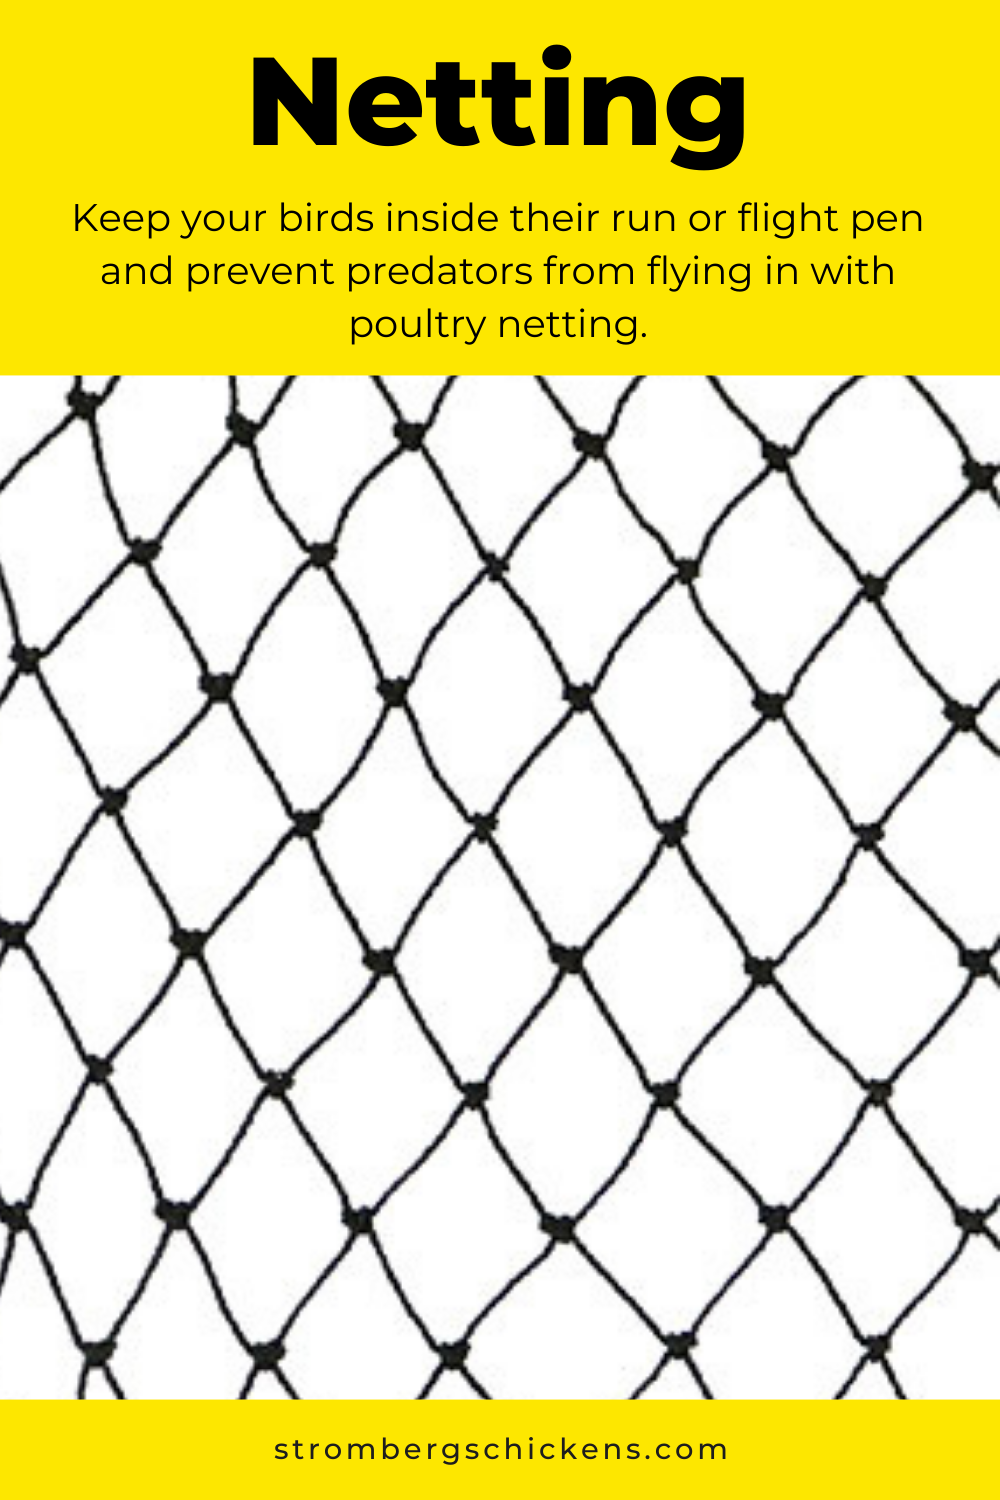 Netting is a great way to keep poultry in and predators out of your chicken run. Sold at Stromberg's.